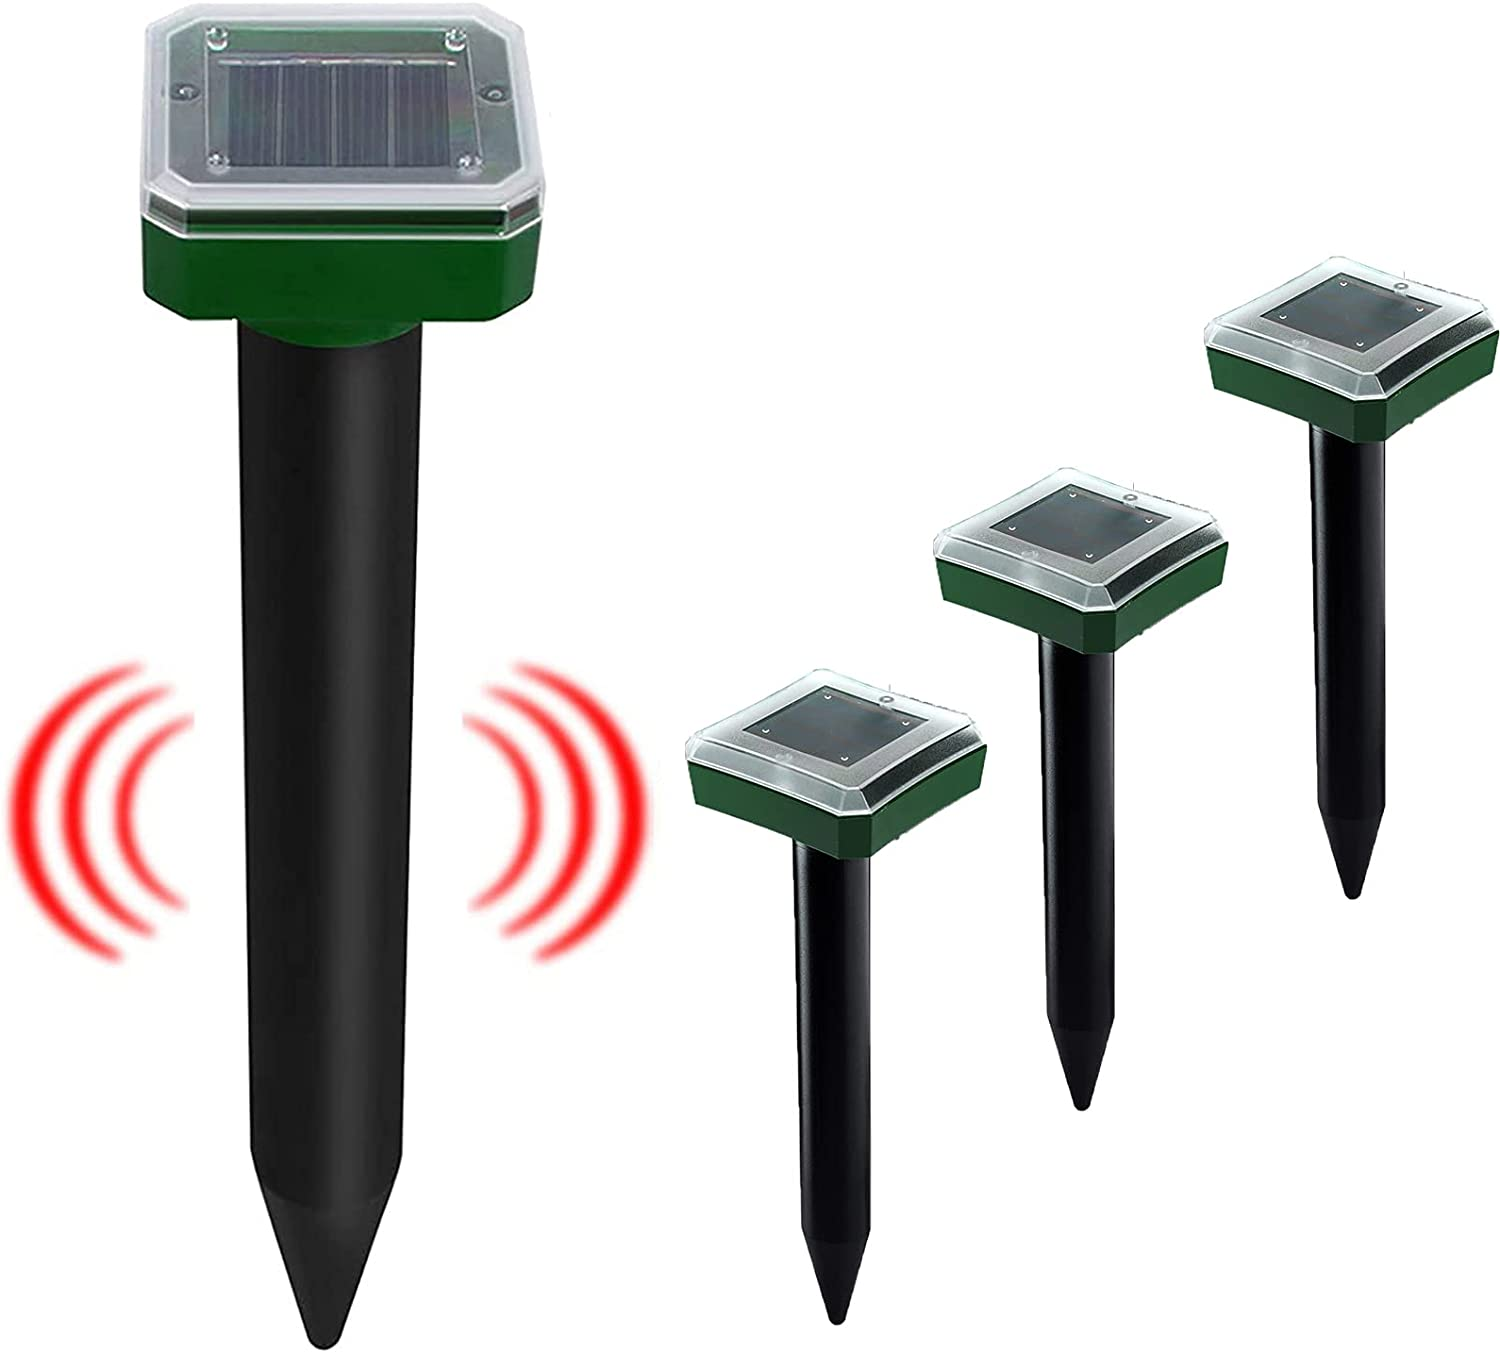 Yjoo 4-Pack Solar Powered Mole Repellent, Ultrasonic Mole Repeller - Outdoor Rodent Groundhog Gopher Chaser Spikes - Use for Lawn, Yard and Garden